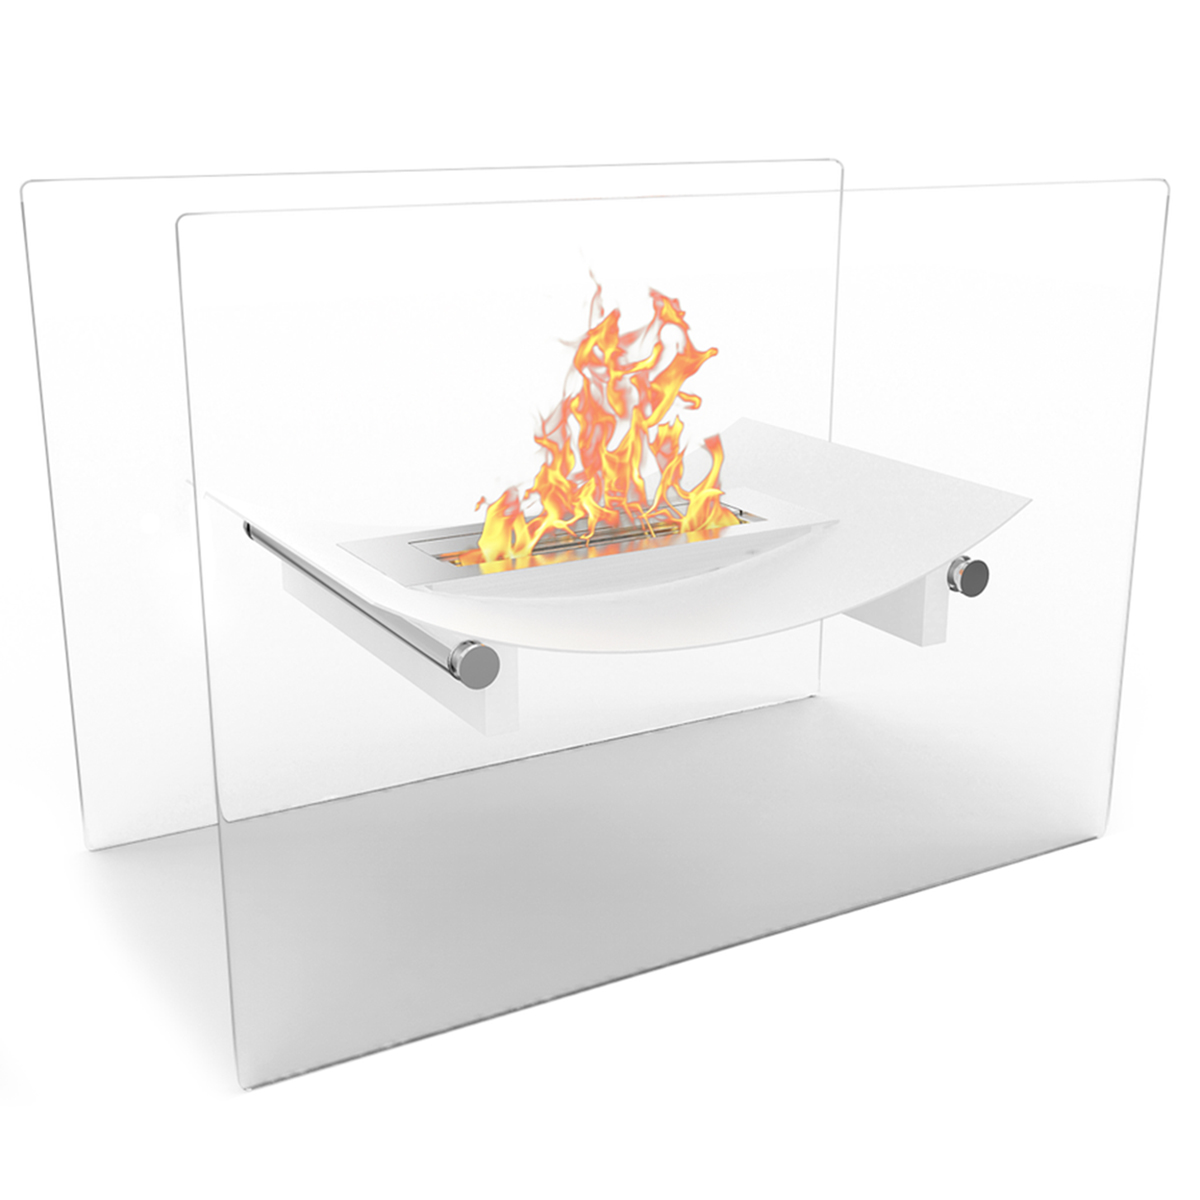 Regal Flame Black Bow Ventless Free Standing Bio Ethanol Fireplace Can Be Used as a Indoor, Outdoor, Gas Log Inserts, Vent Free,